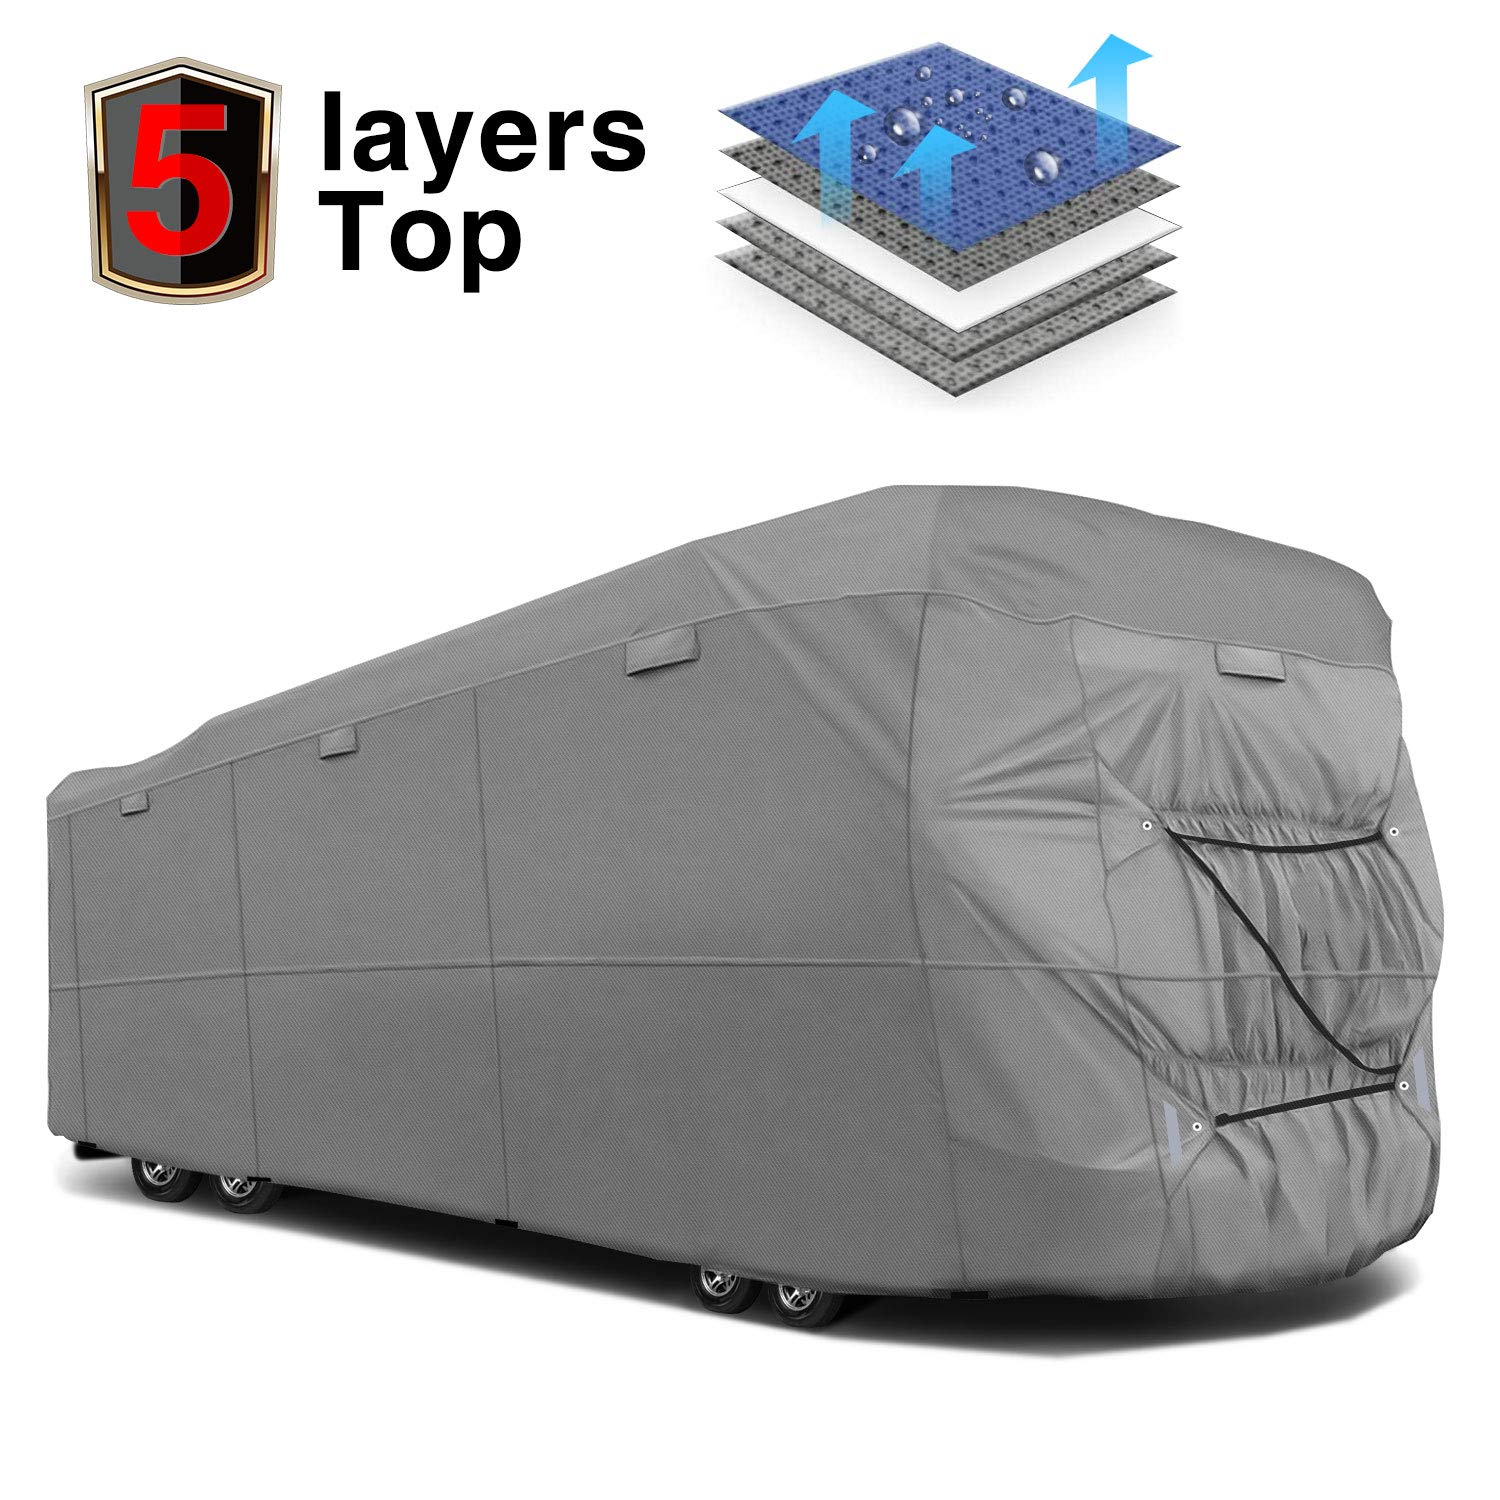 RVMasking Extra-Thick 5-ply Class A RV Cover, Fits 38'1'' - 42' RVs -  Breathable All Weather Ripstop Anti-UV Class A Cover 15 PCS Windproof  Buckles &